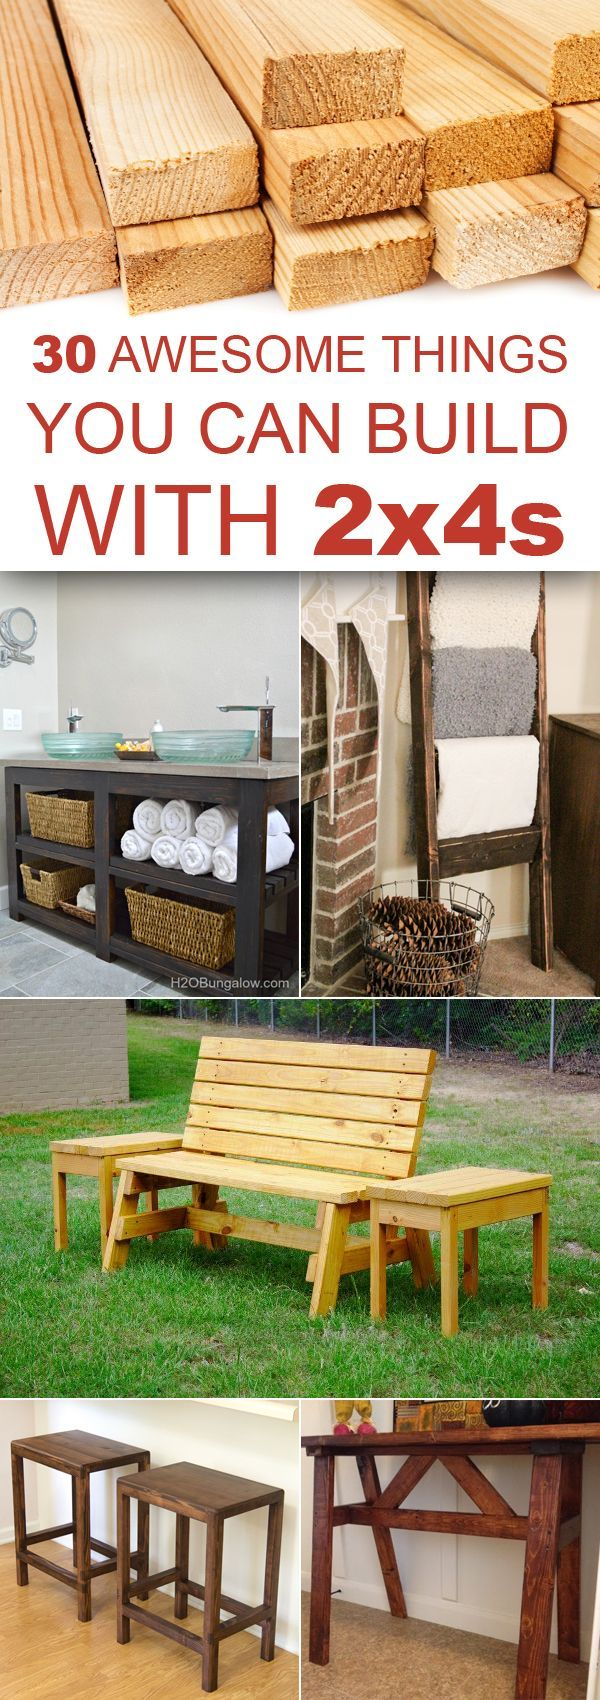 25 Unique Simple Woodworking Projects Ideas On Pinterest